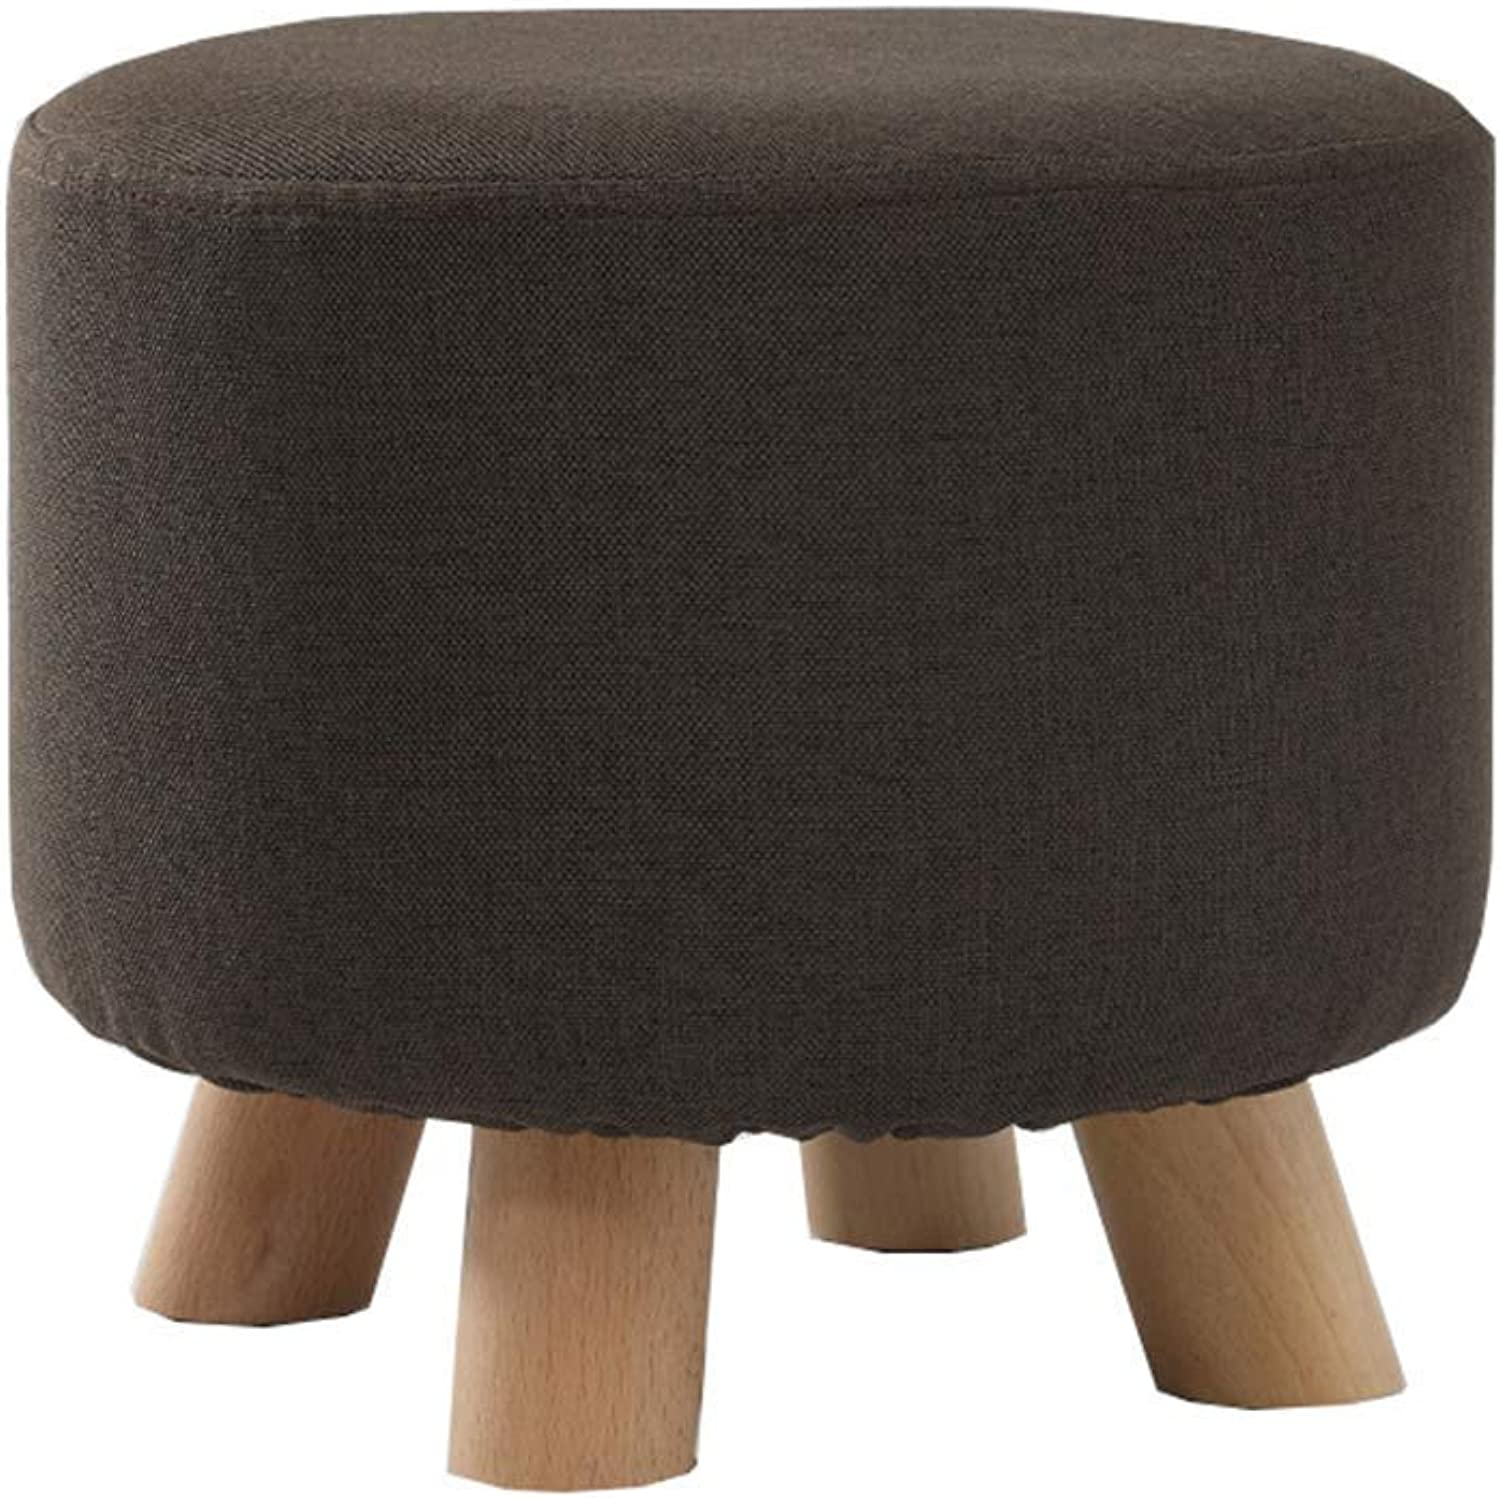 ChenDz Cute Stool Solid Wood shoes Bench Stool Fashion Creative shoes Bench Fabric Sofa Bench Bench Stool Stool Brown